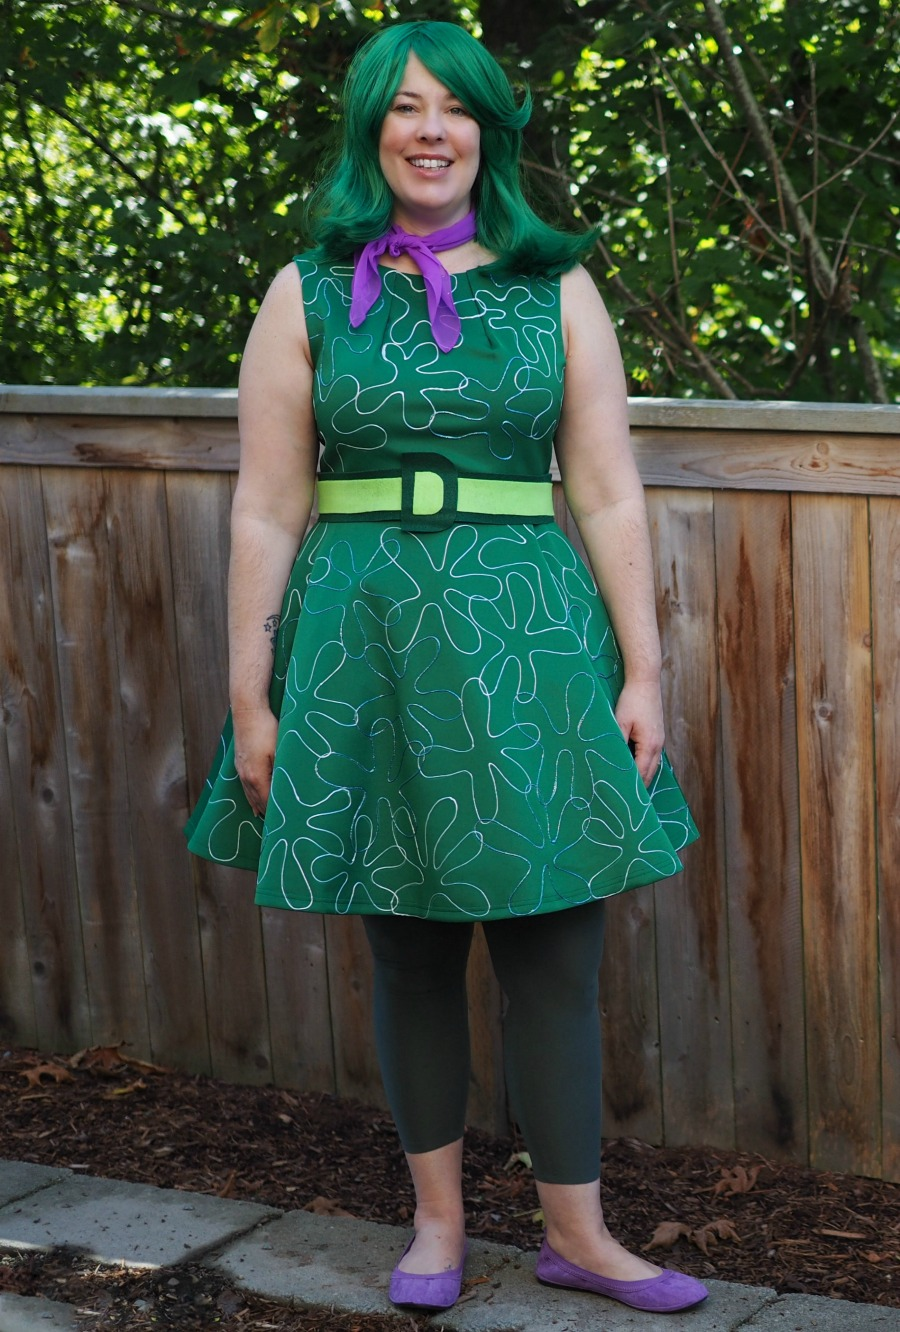 disgust-inside-out-full-body-costume-cosplay